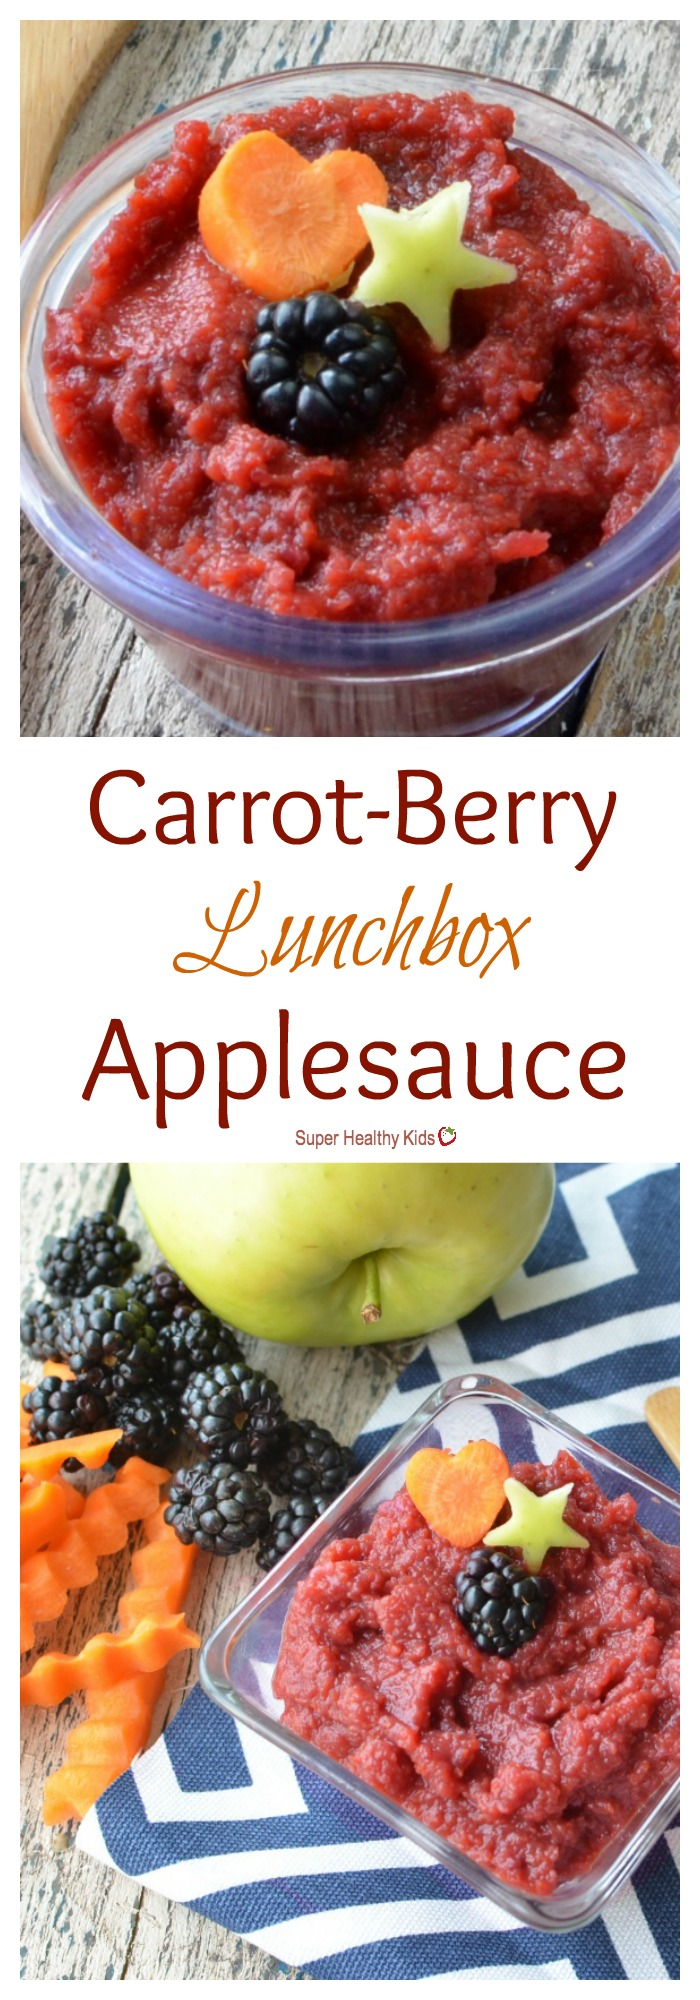 FOOD - Carrot-Berry Lunchbox Applesauce. Combining fruits AND veggies in this favorite lunch box food! http://www.superhealthykids.com/carrot-berry-lunchbox-applesauce/